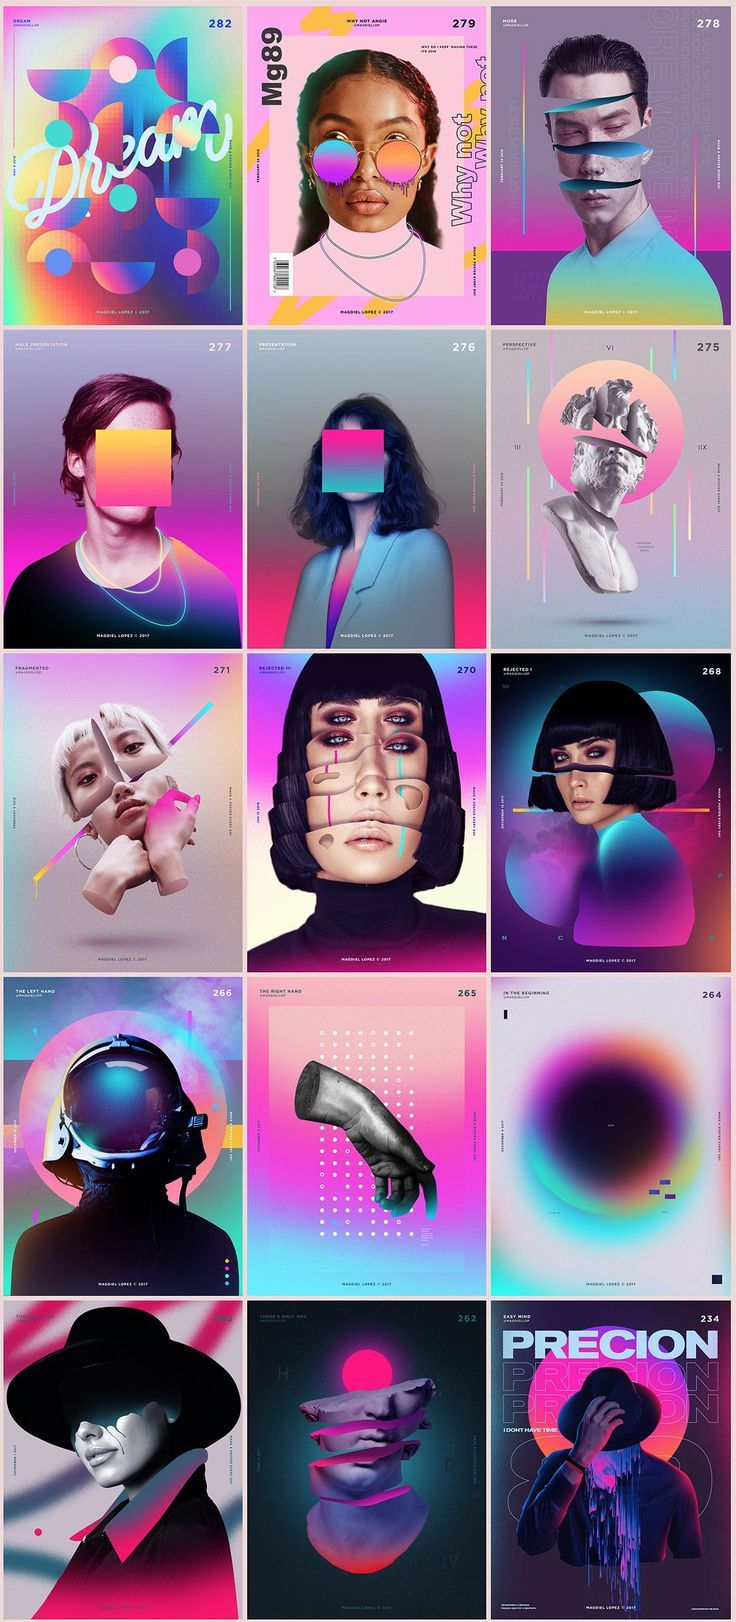 Graphic design trends 2018 Magdiel is an artist/creative director born in Cuba, living in Dallas, Texas. Through his 12+ year career, Magdiel has worked on, and lead, projects ranging from brand ident